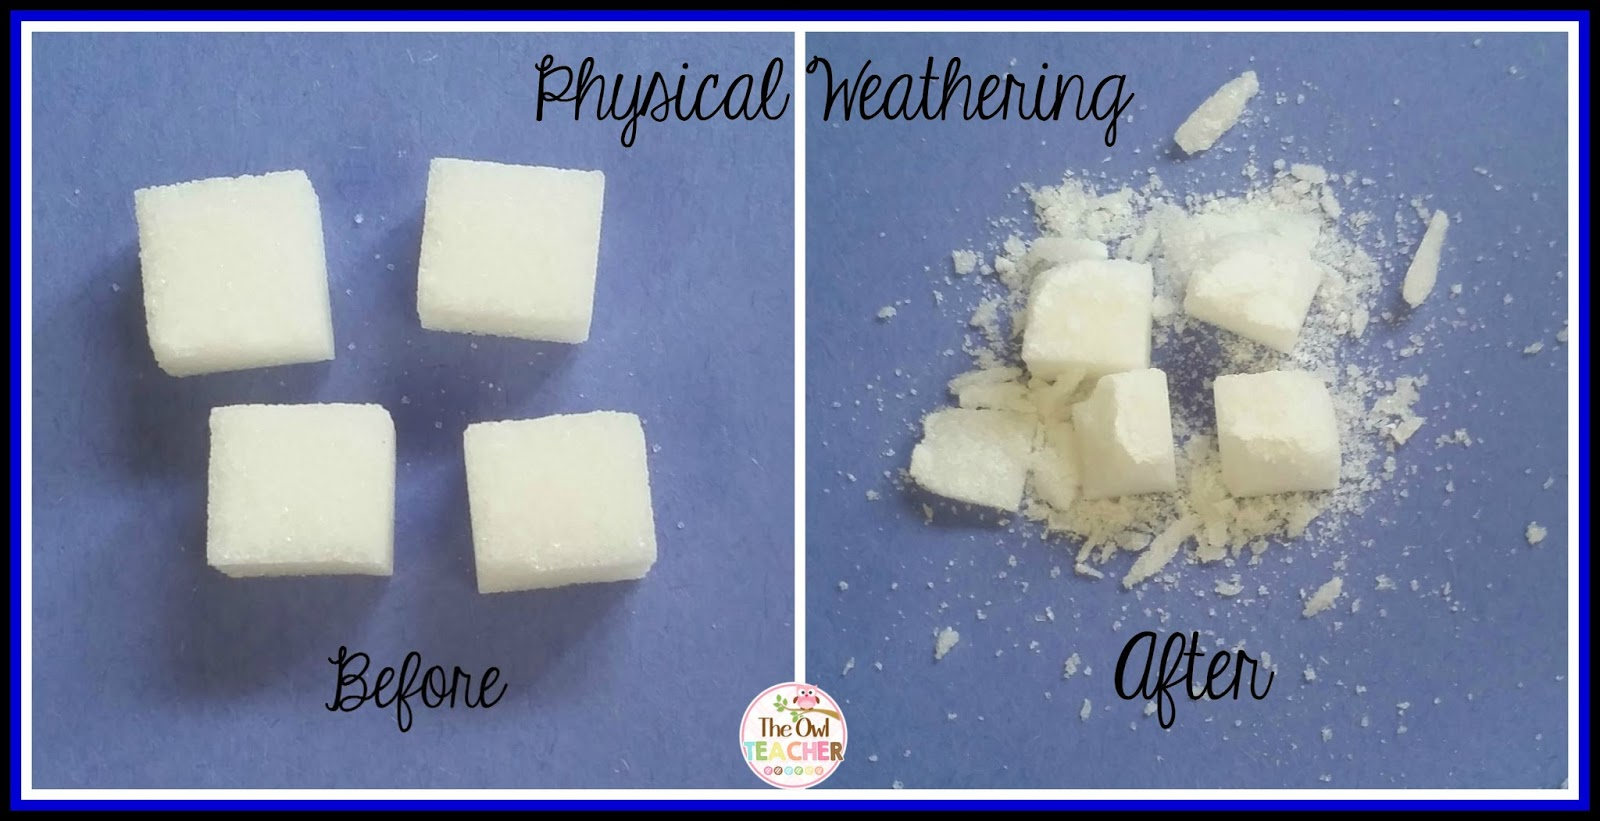 physical and chemical weathering experiments the owl teacher